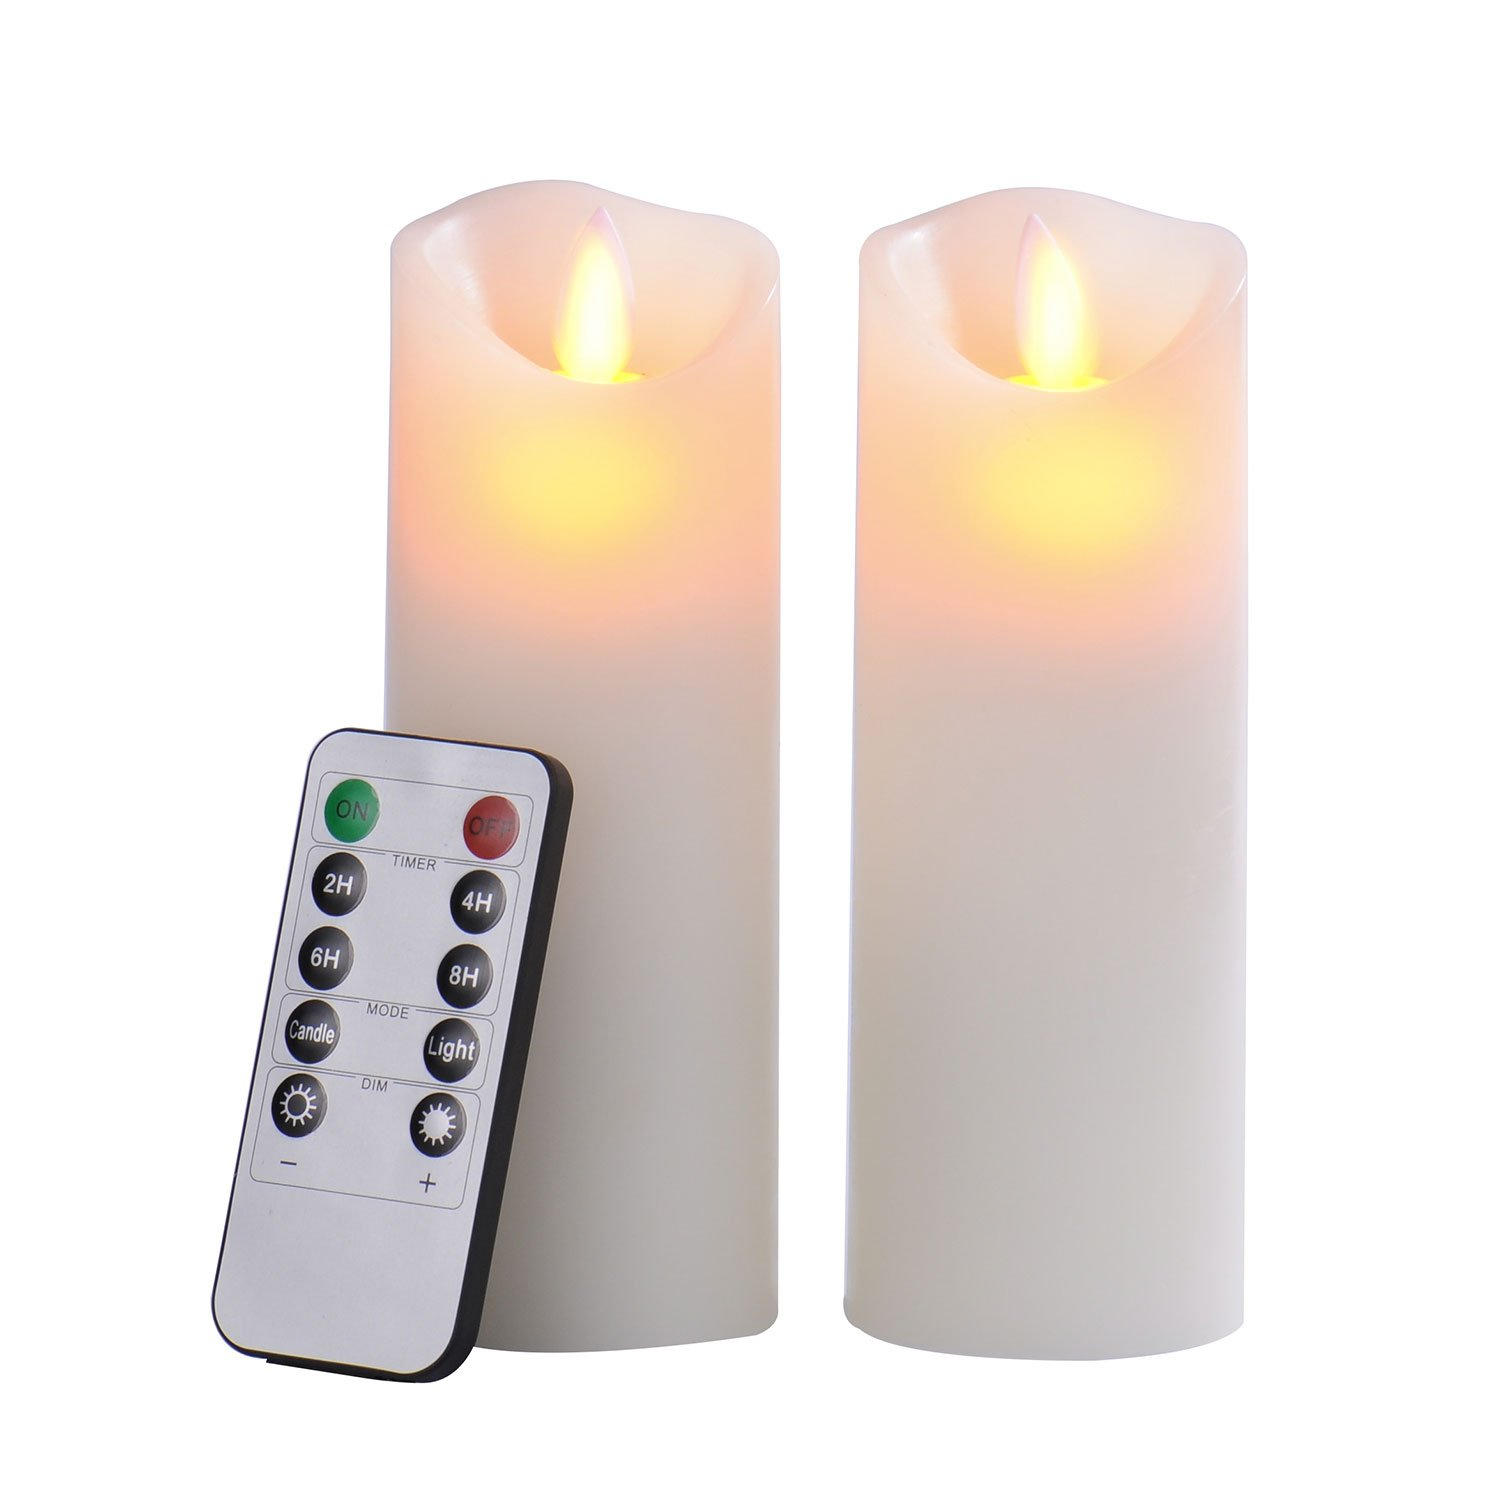 Pandaing 2.2x6 Set of 2 Battery-powered Classic Pillar Real Wax Moving Wick Flameless LED Candles with Timer & 10-key Remote Control, Ivory Color P-00201